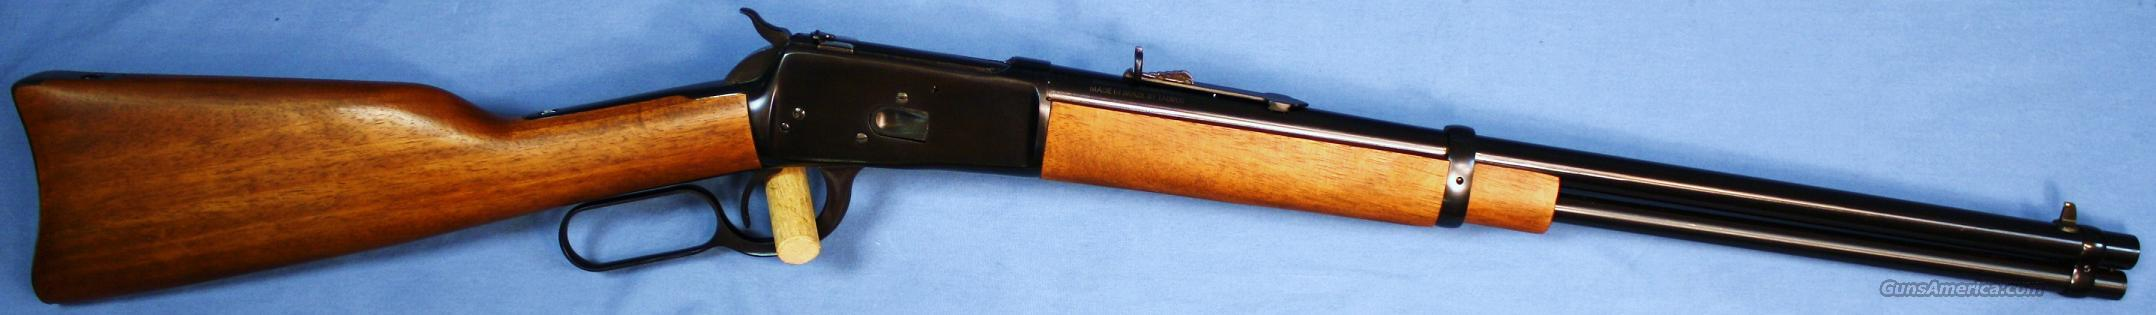 Rossi Model 92 Lever Action Rifle .357 Magnum  Guns > Rifles > Rossi Rifles > Cowboy